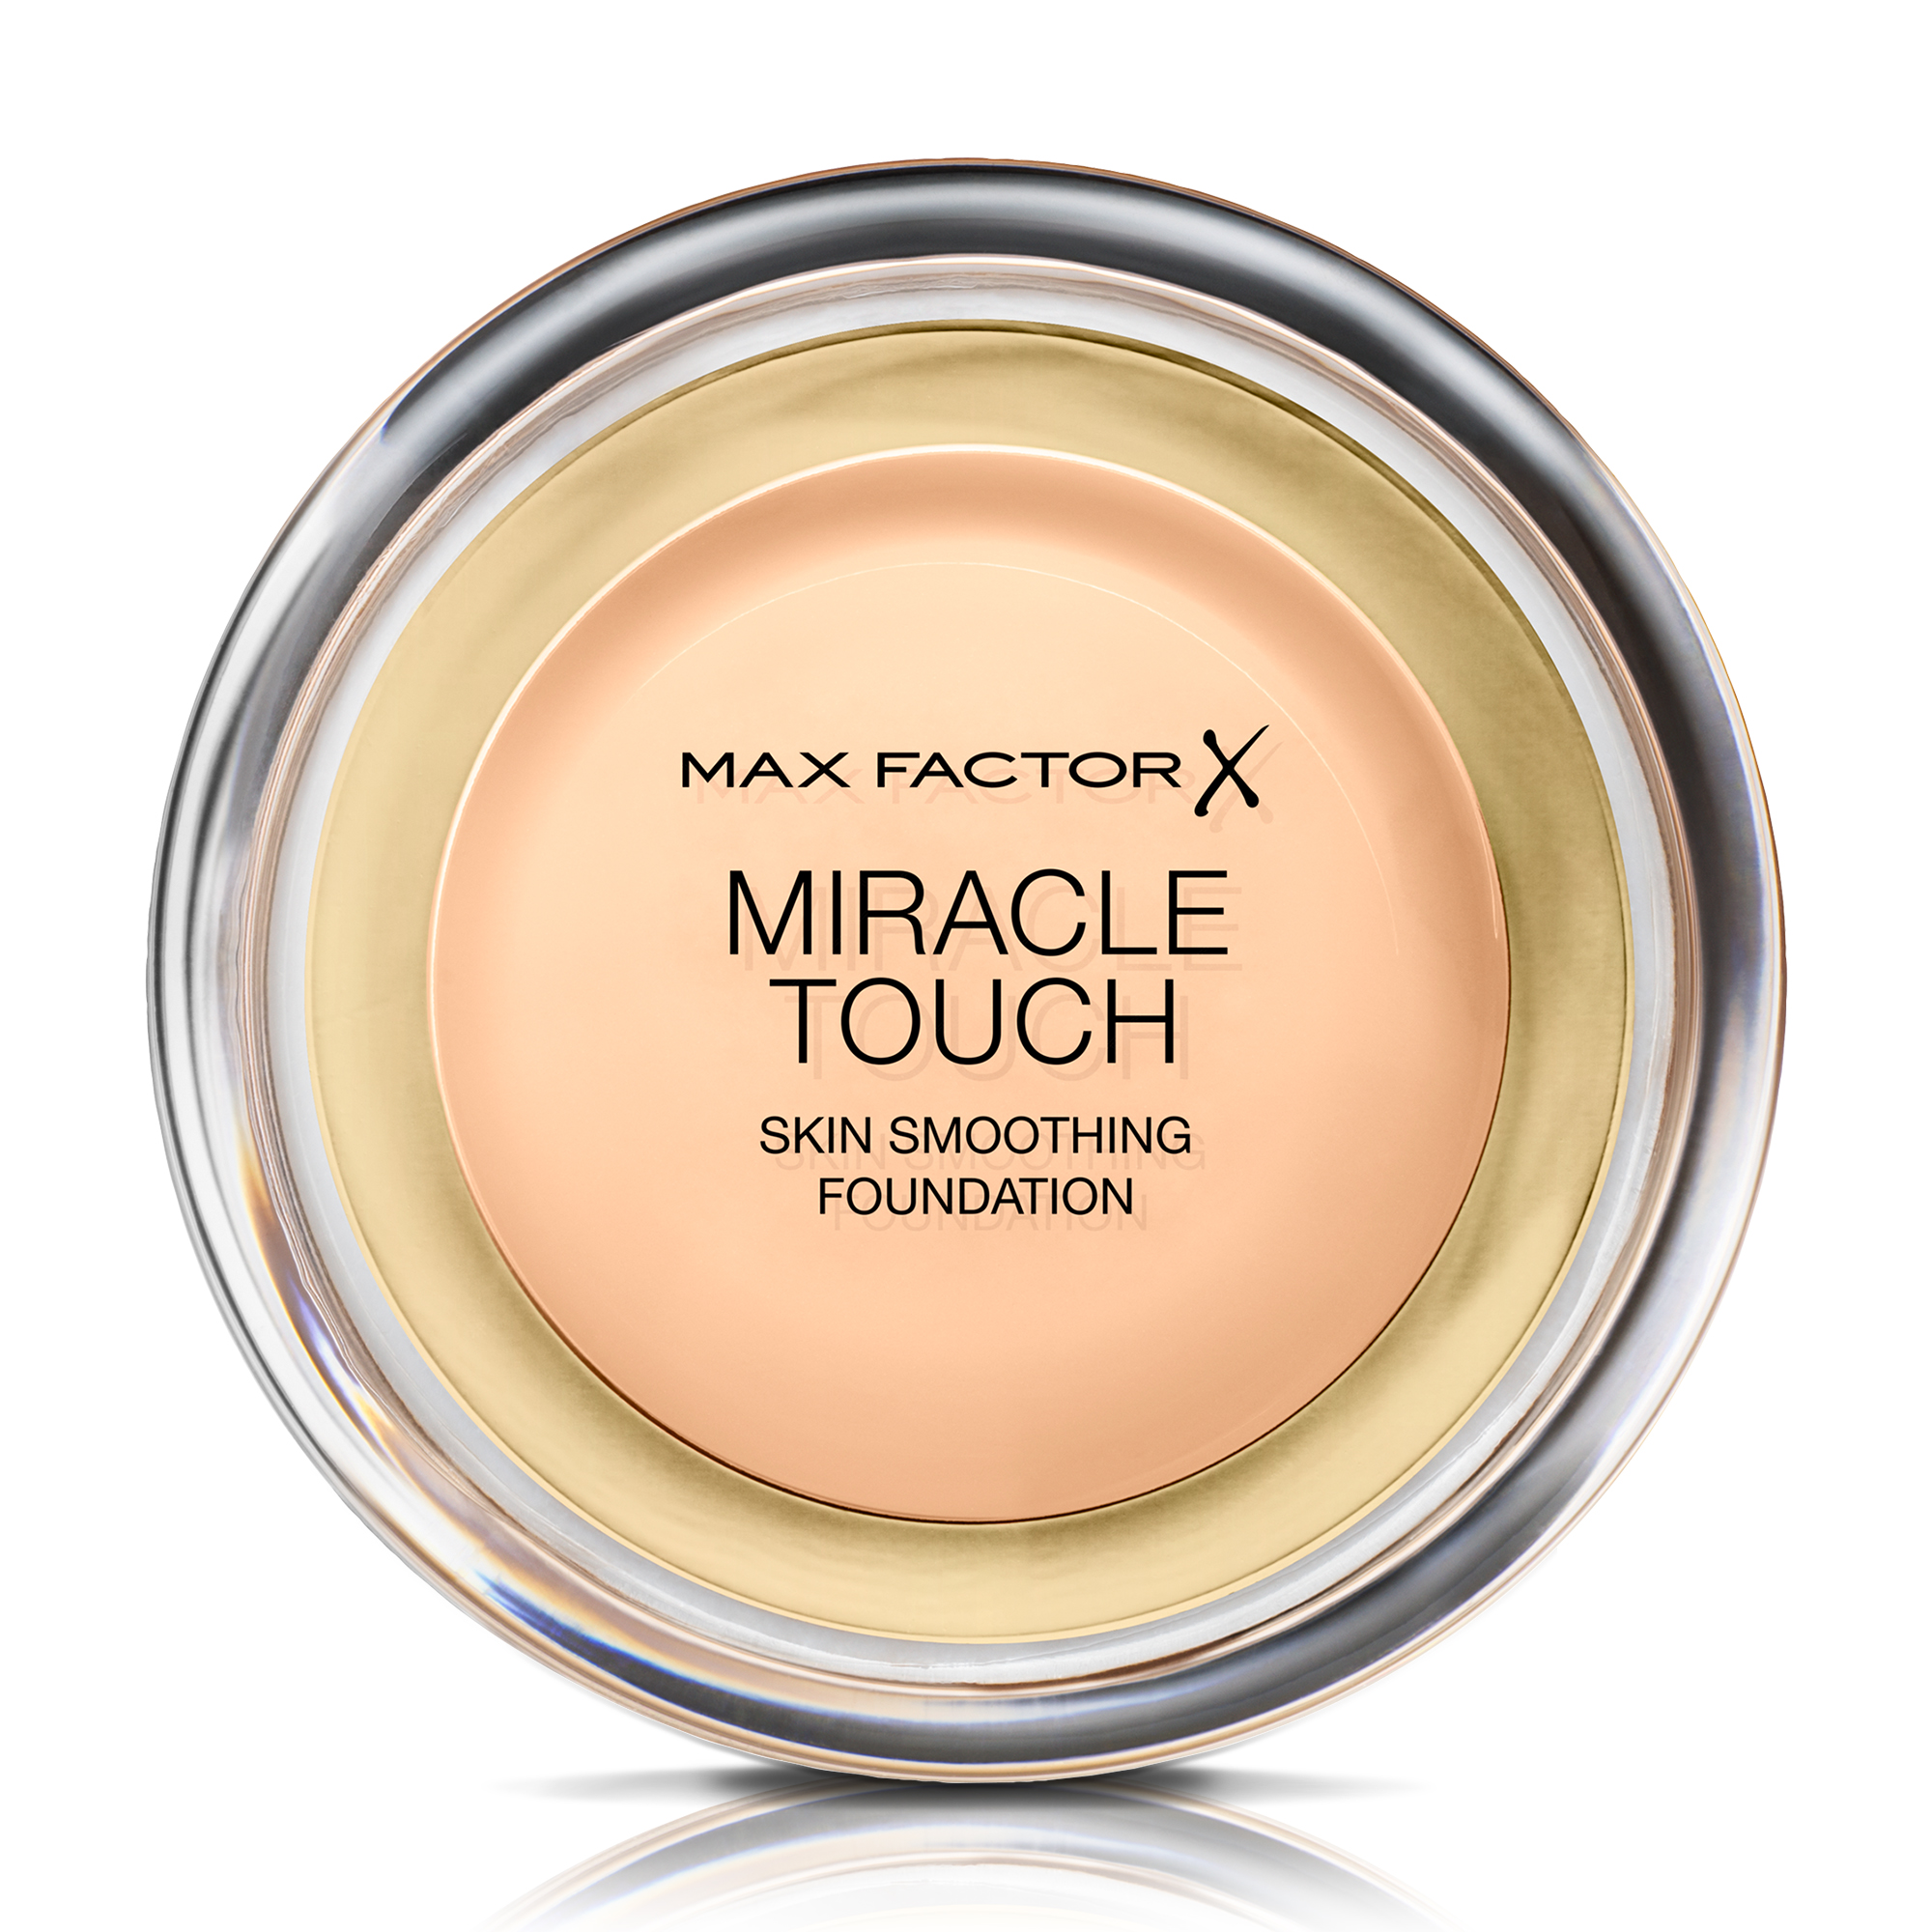 5011321338708_MIRACLE_TOUCH_FOUNDATION_COMPACT_040_CREAMYIVORY_1